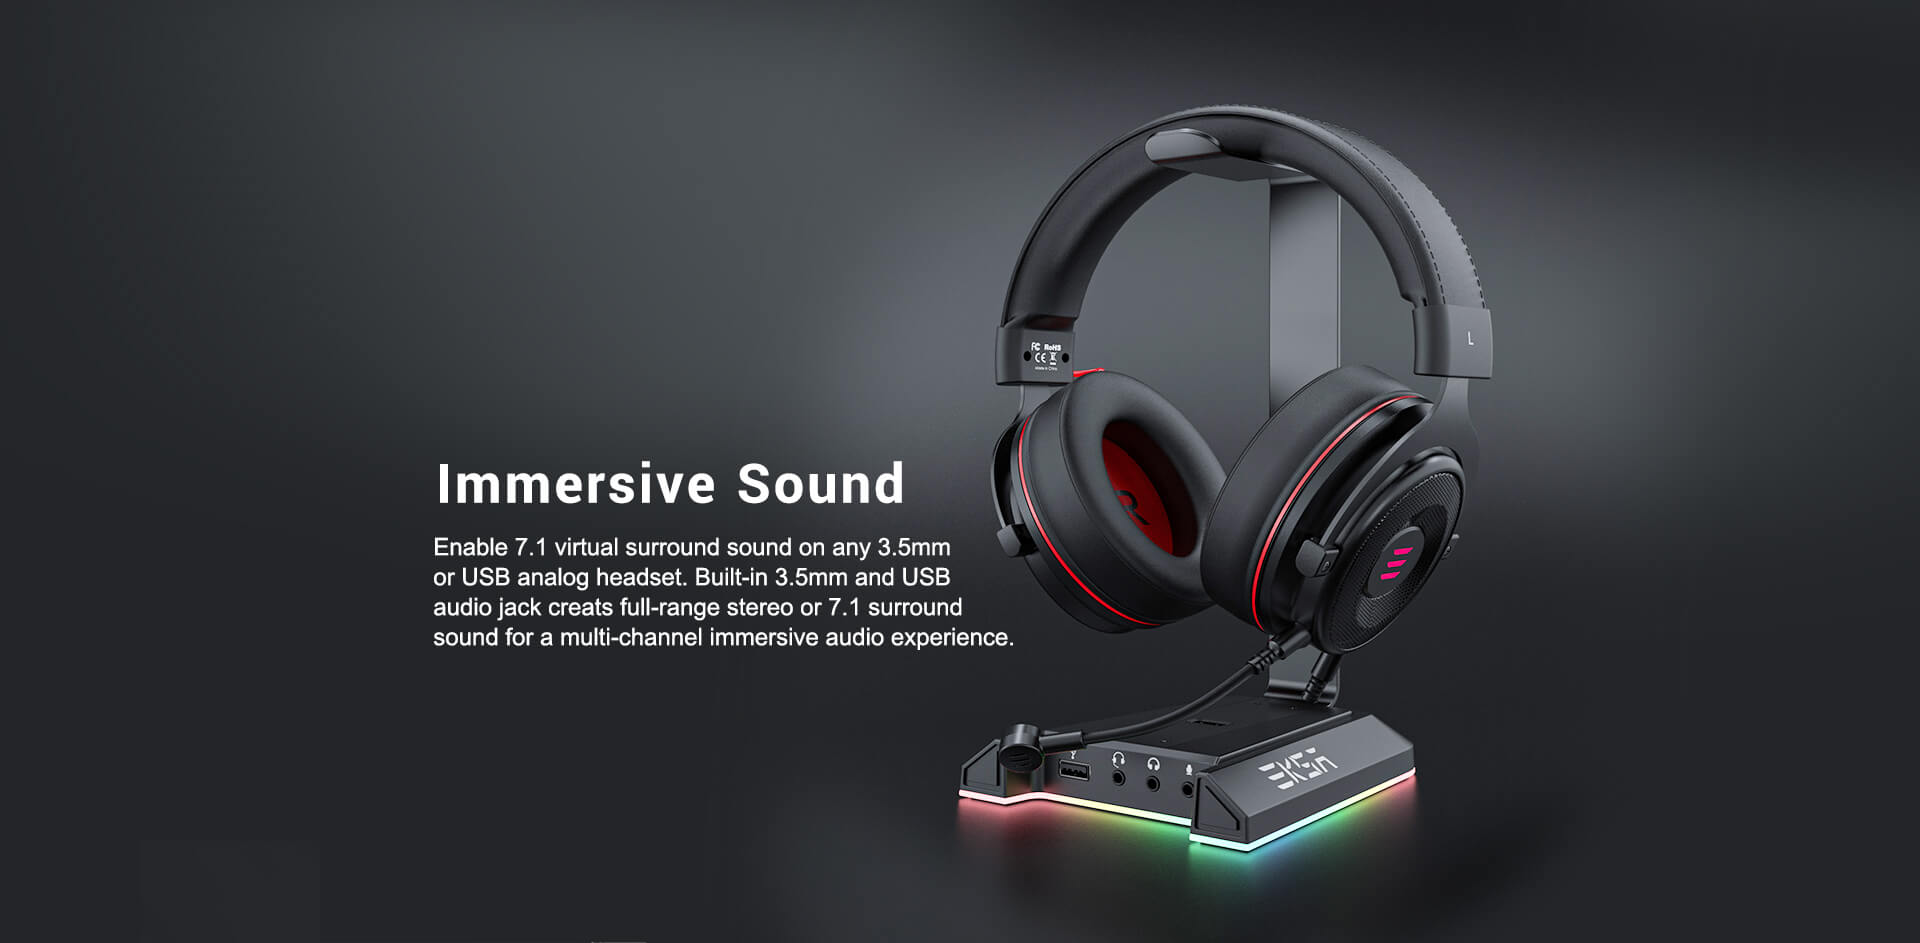 EKSA RGB headset stand with 7.1 virtual surround sound